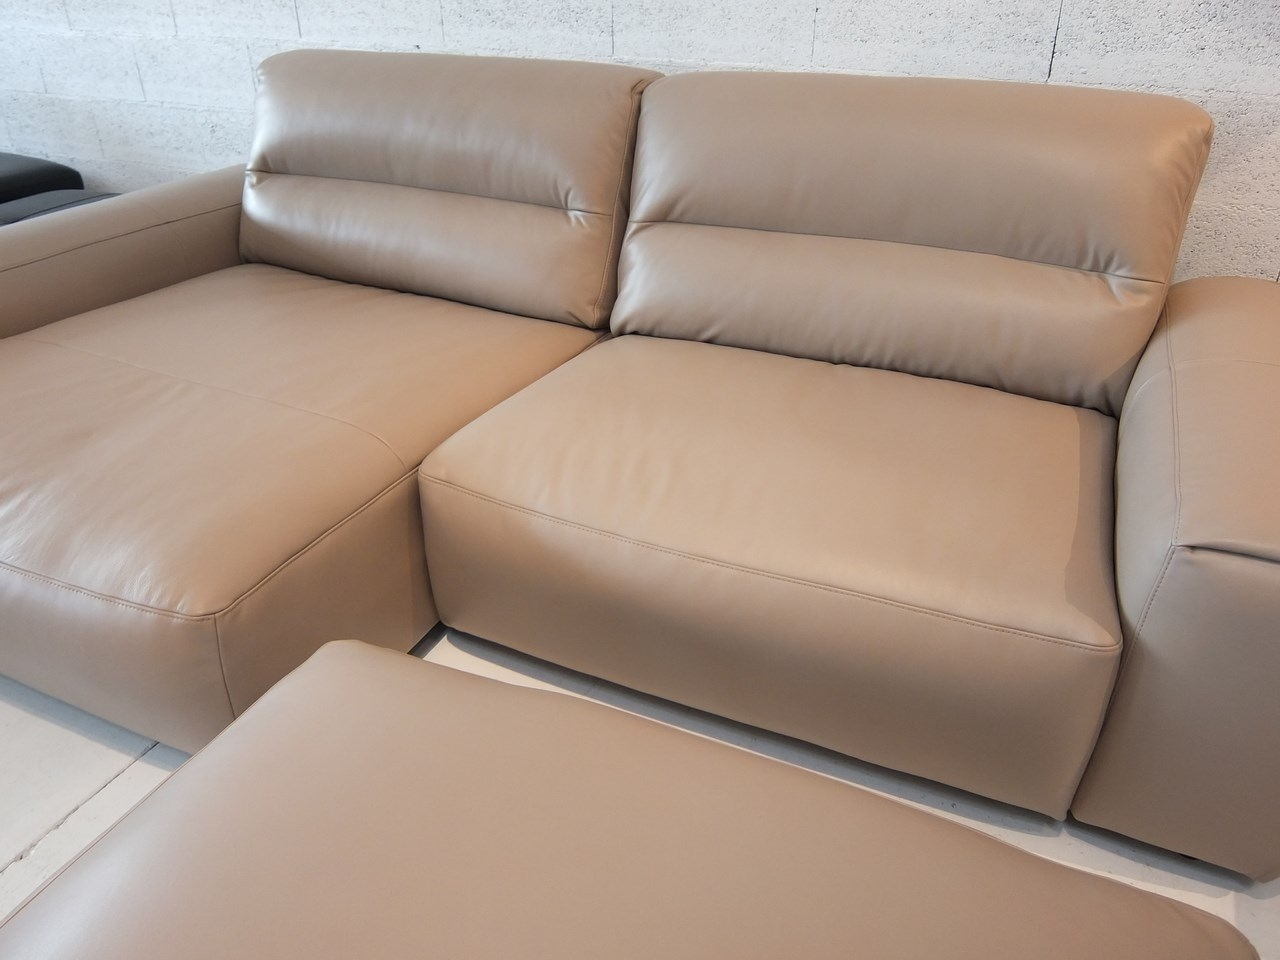 Canape d angle taupe cuir dropmein blog de seanroyale - Canape d angle cuir but ...